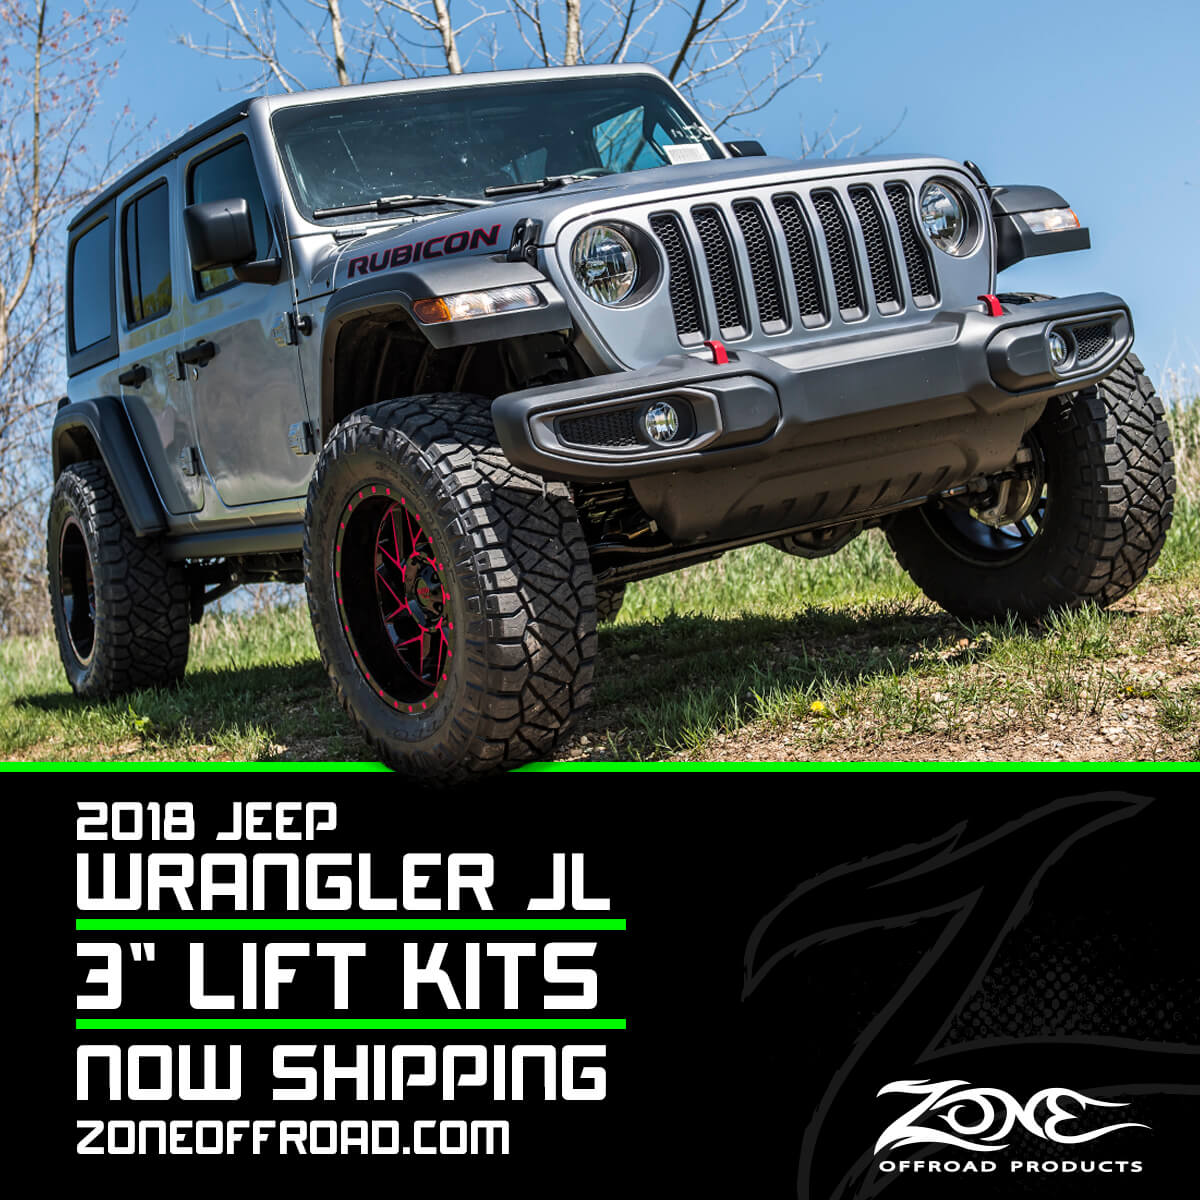 Zone Offroad New Product Announcement 145 Zone 3 Lift Kits For